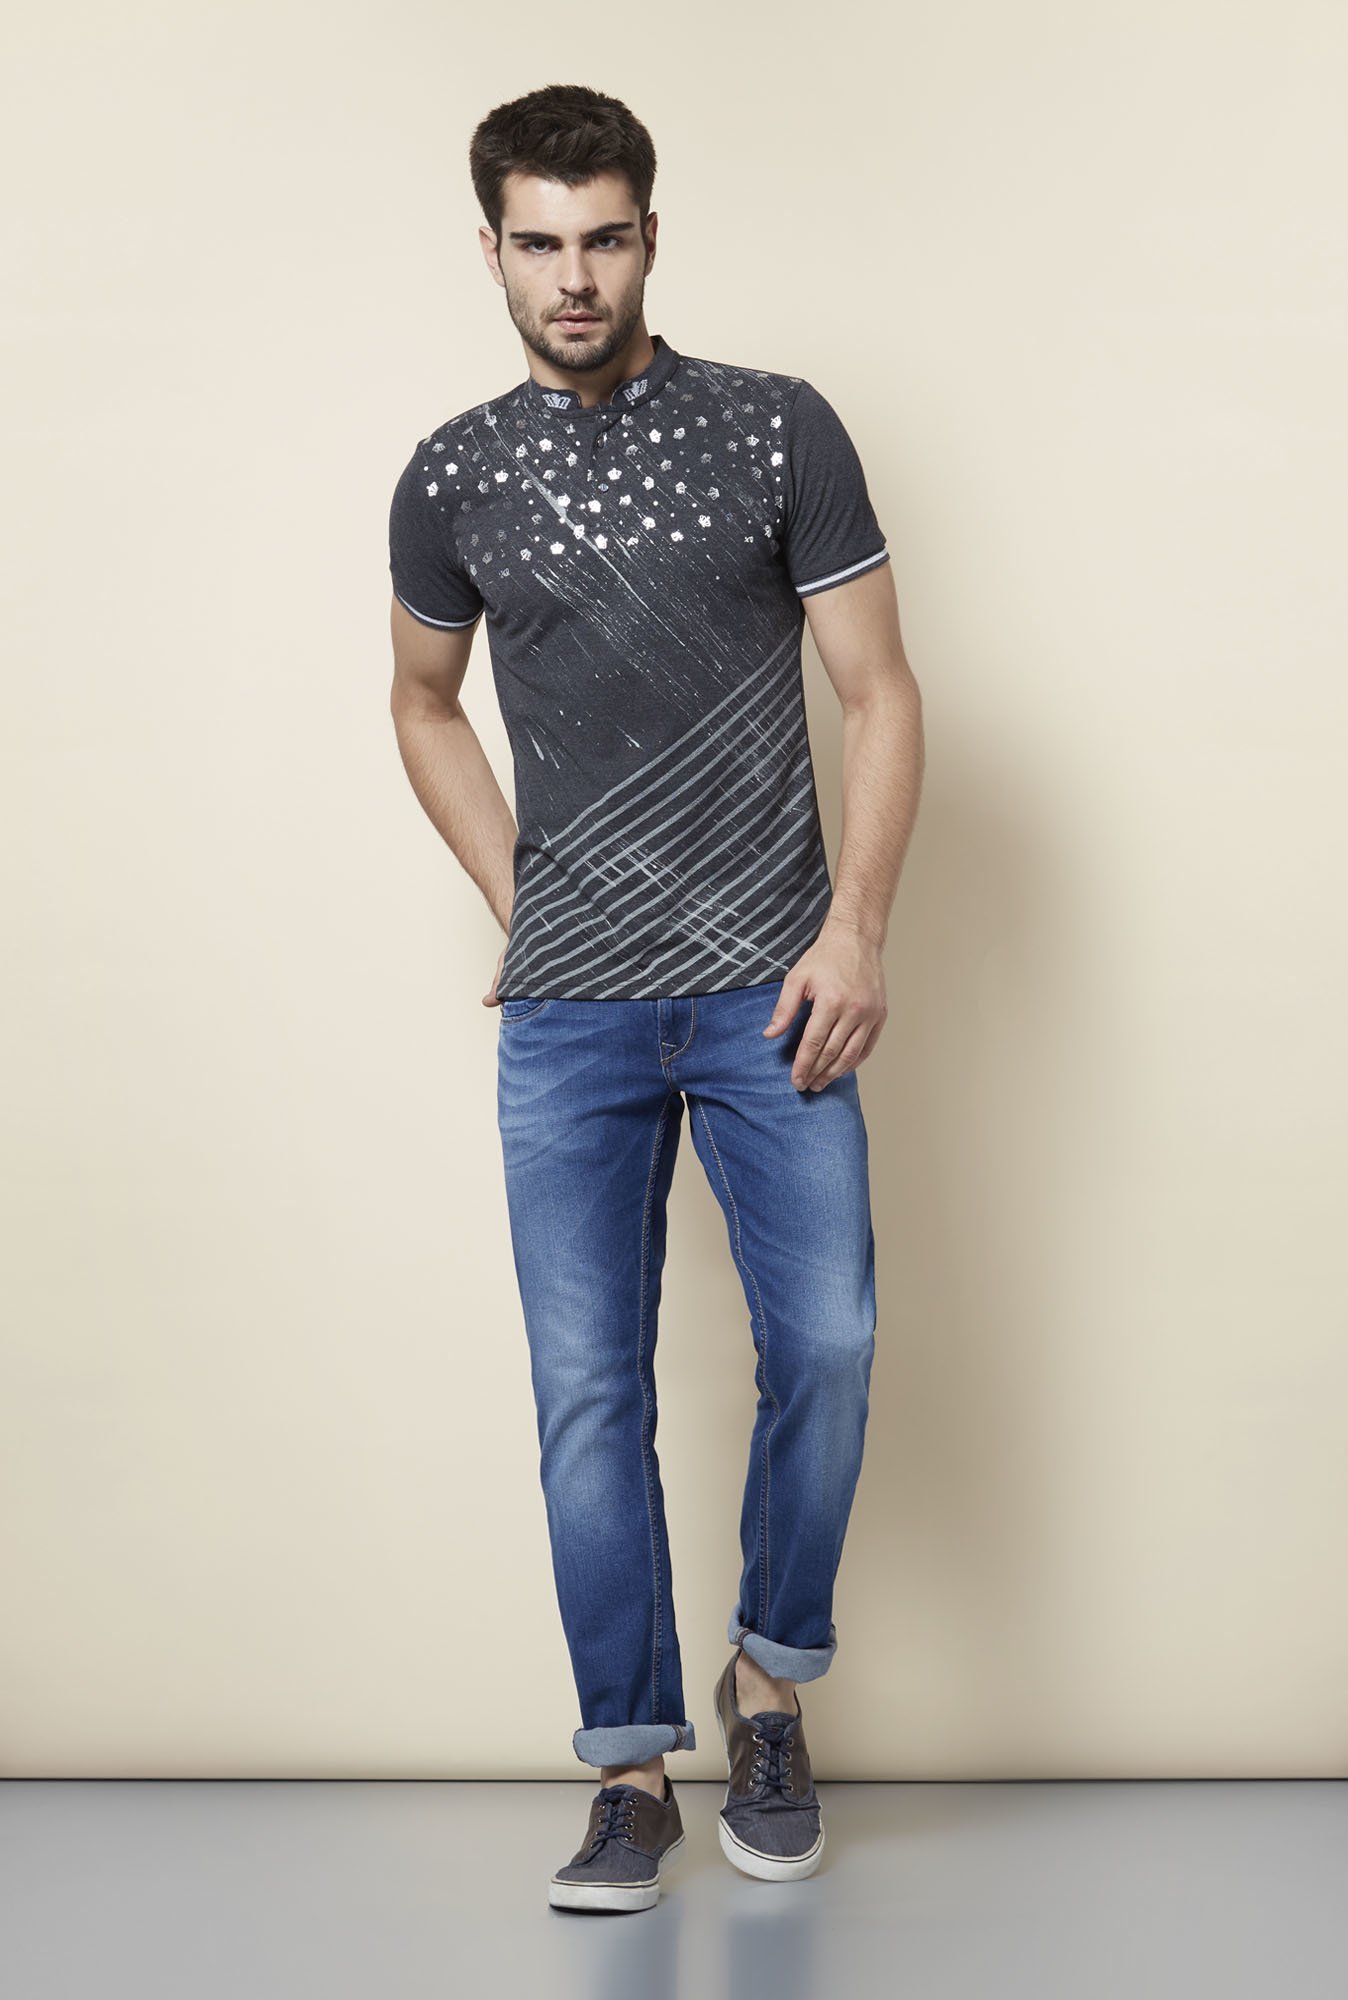 Lawman Charcoal Printed T shirt